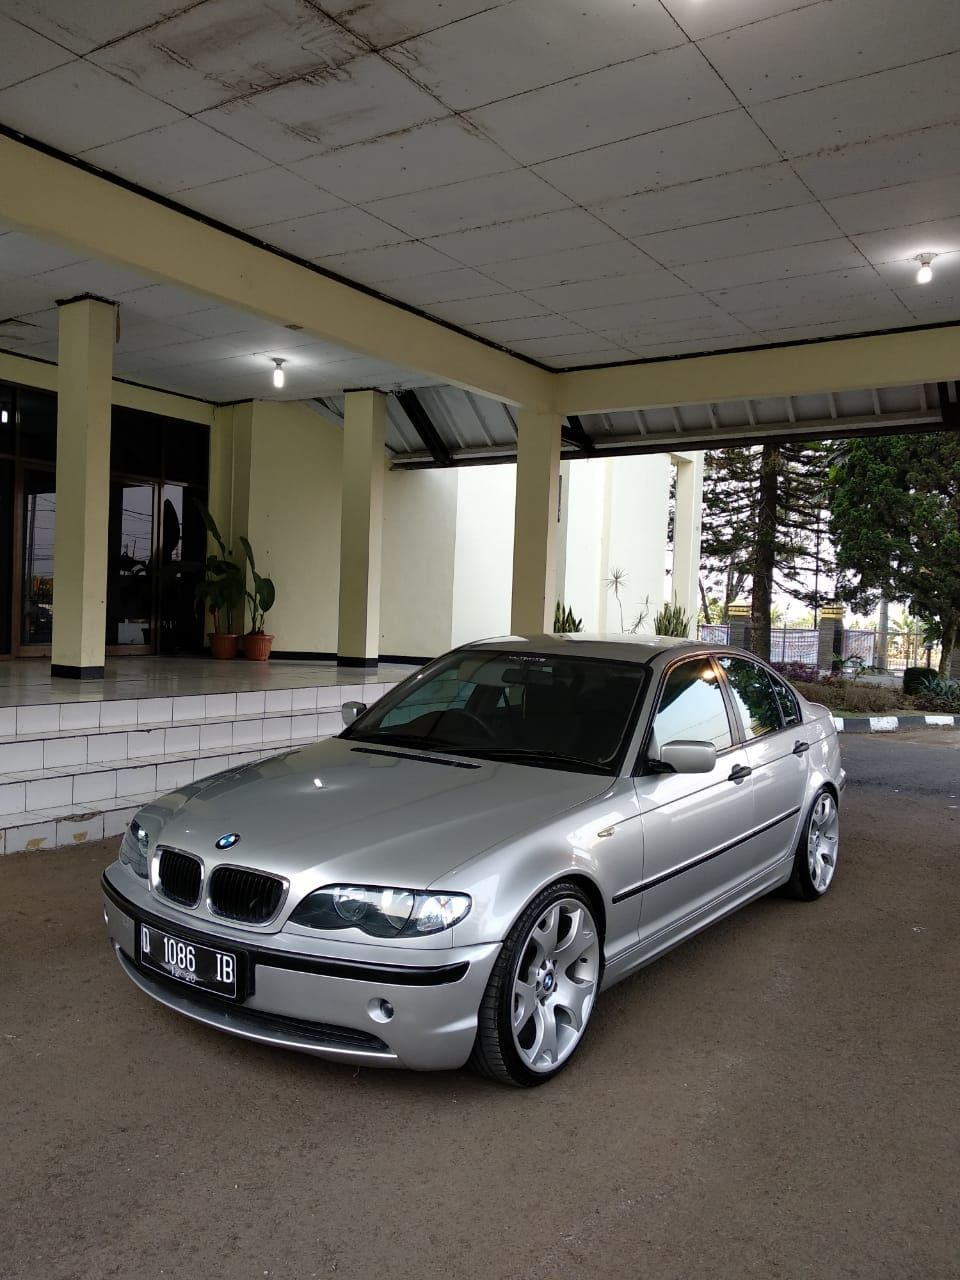 Forsale Bmw E46 318i 2002 Facelift Titan Silver Colour Grey